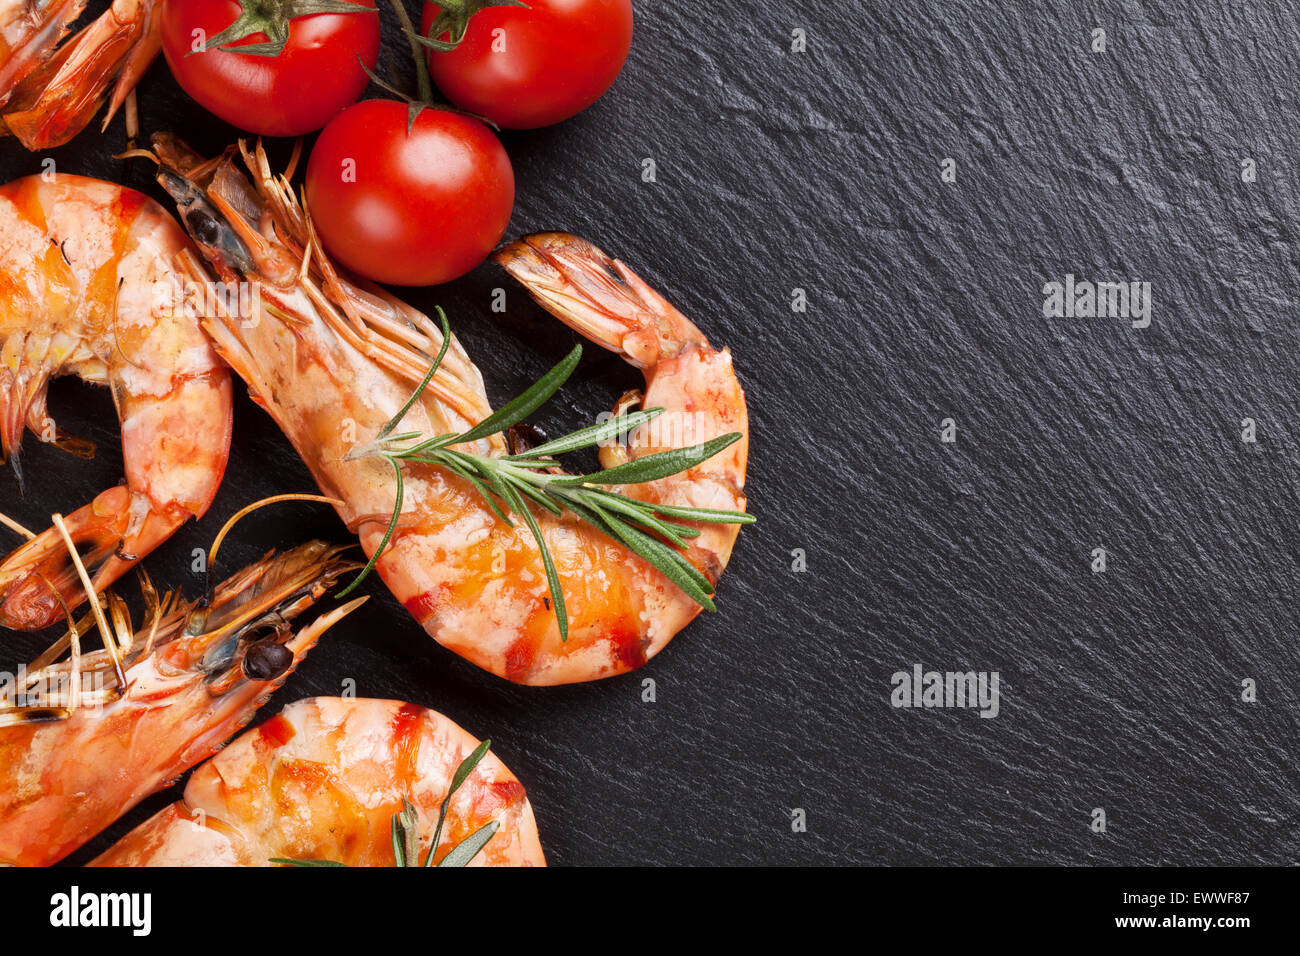 Grilled shrimps on stone plate. Top view with copy space - Stock Image